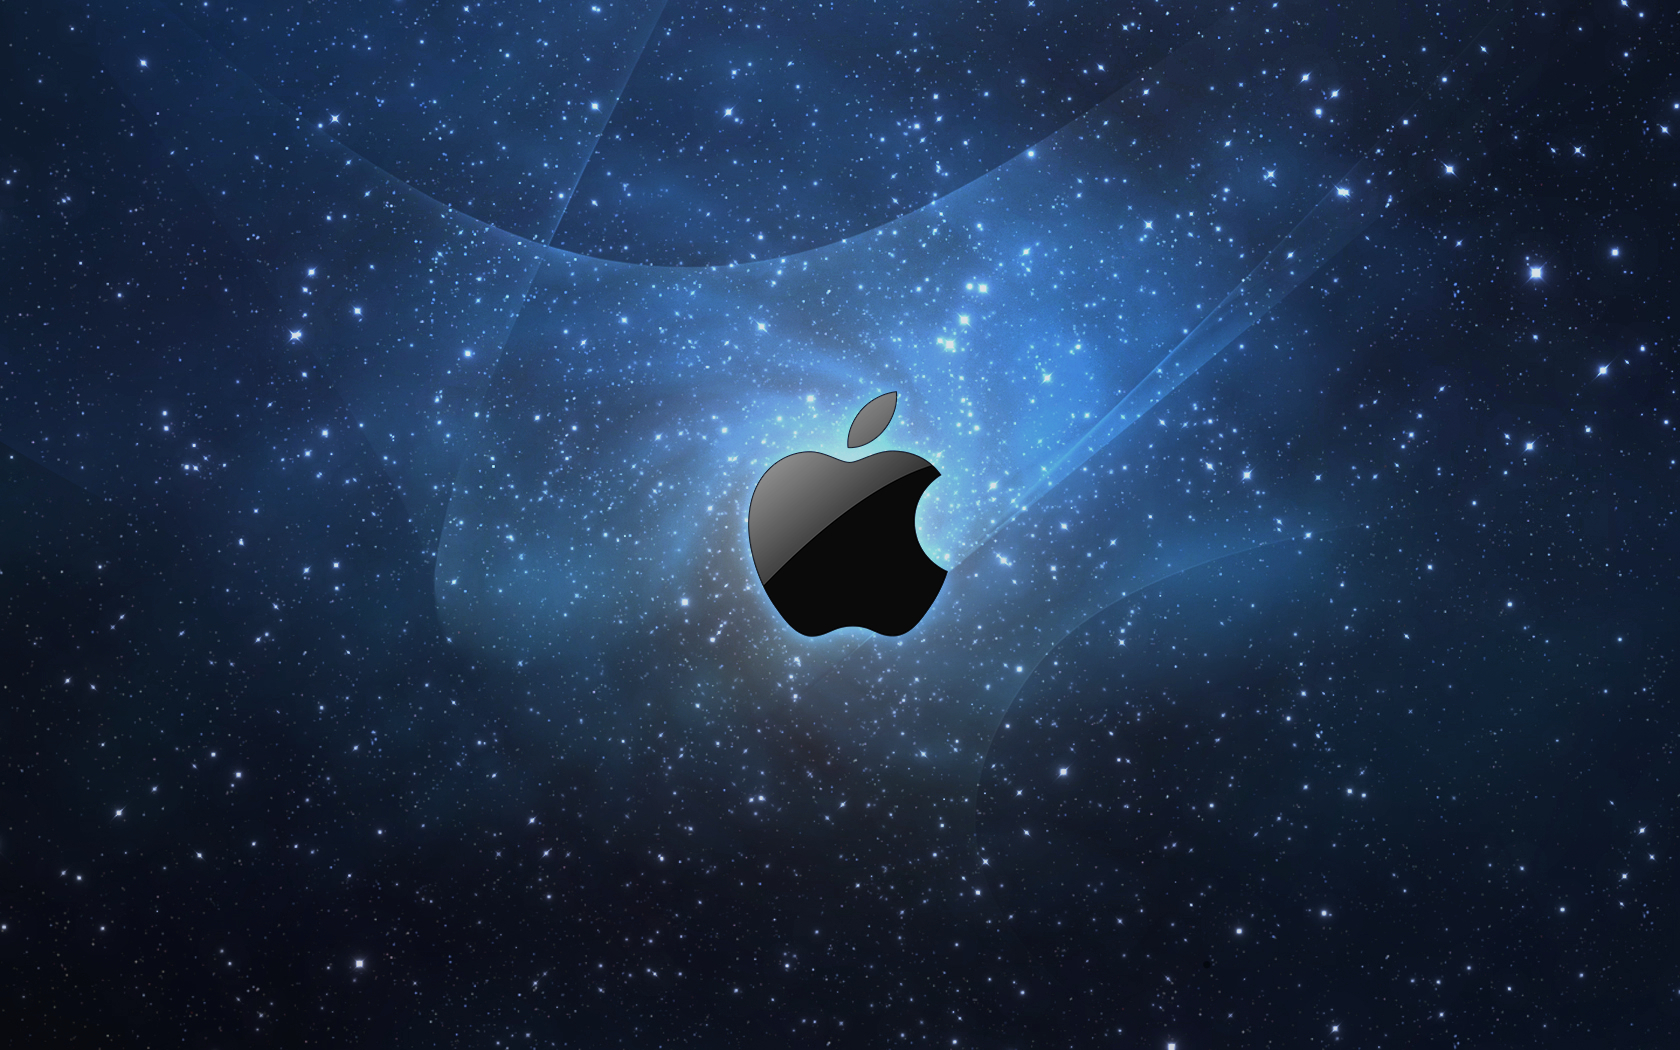 Apple Wallpaper Pc